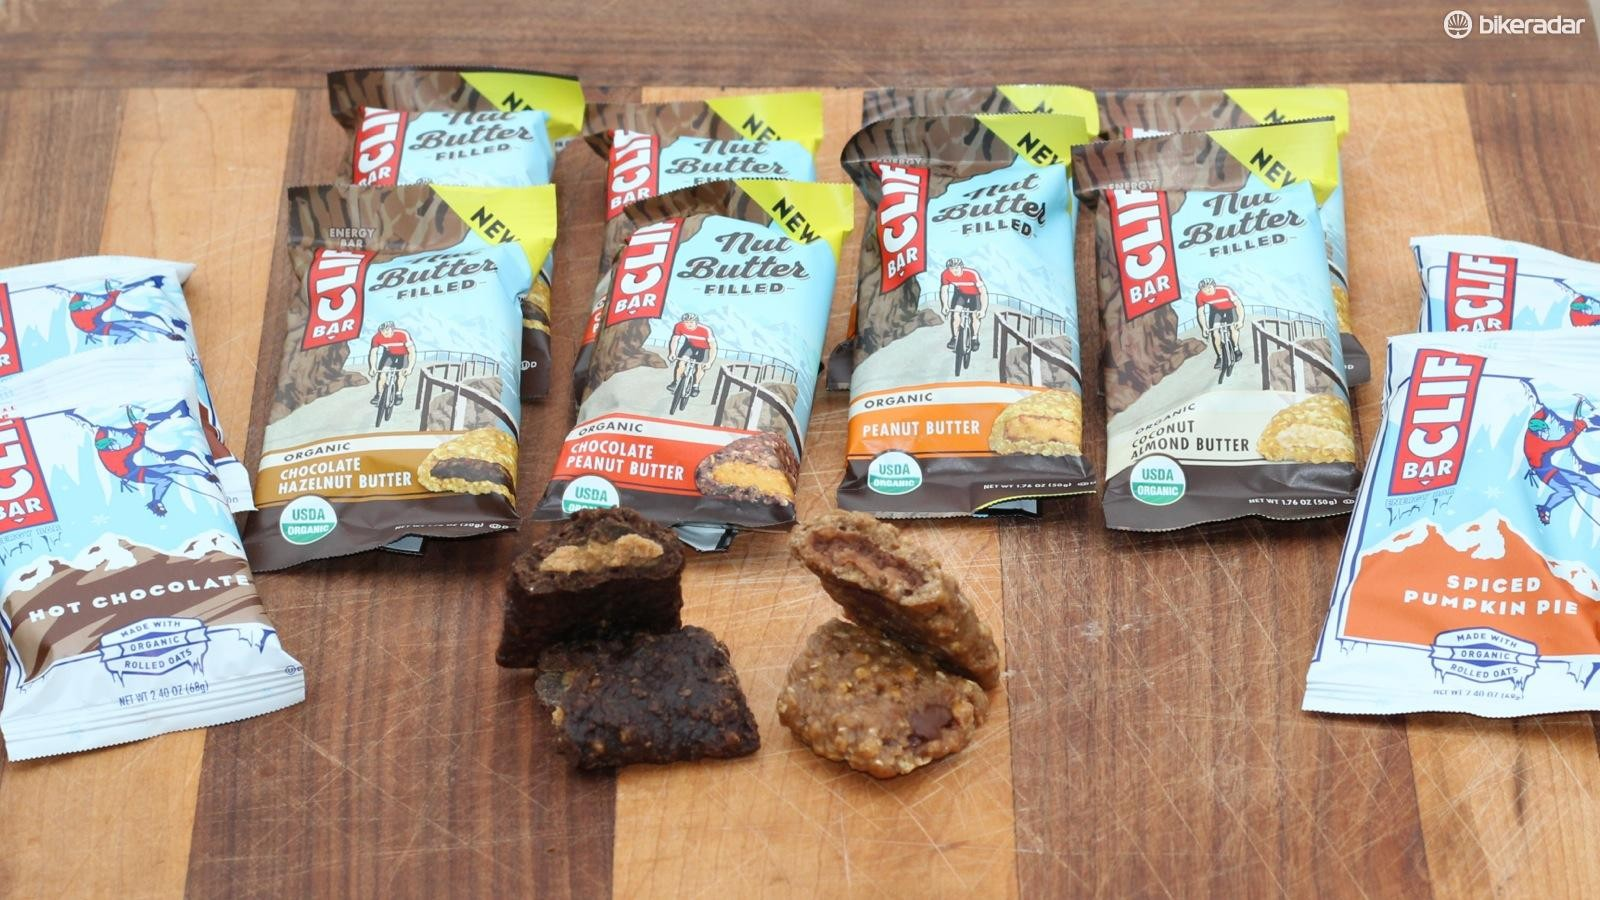 Nut butter filled bars are now a thing from Clif Bar and seasonal flavors like Hot Chocolate and Spiced Pumpkin Pie are back